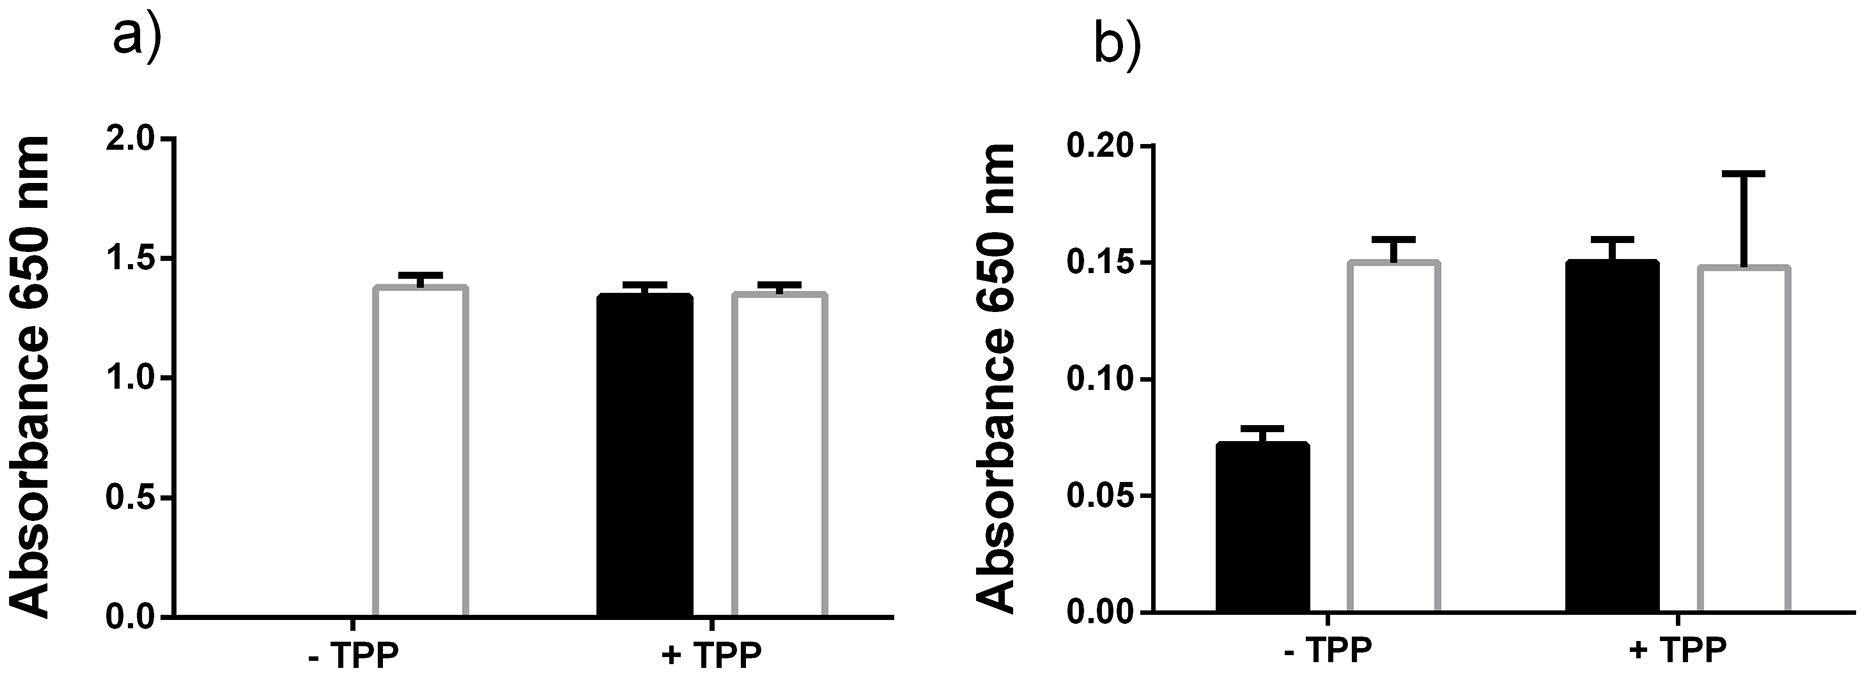 Excess thiamine pyrophosphate production by <i>P. gingivalis</i>.